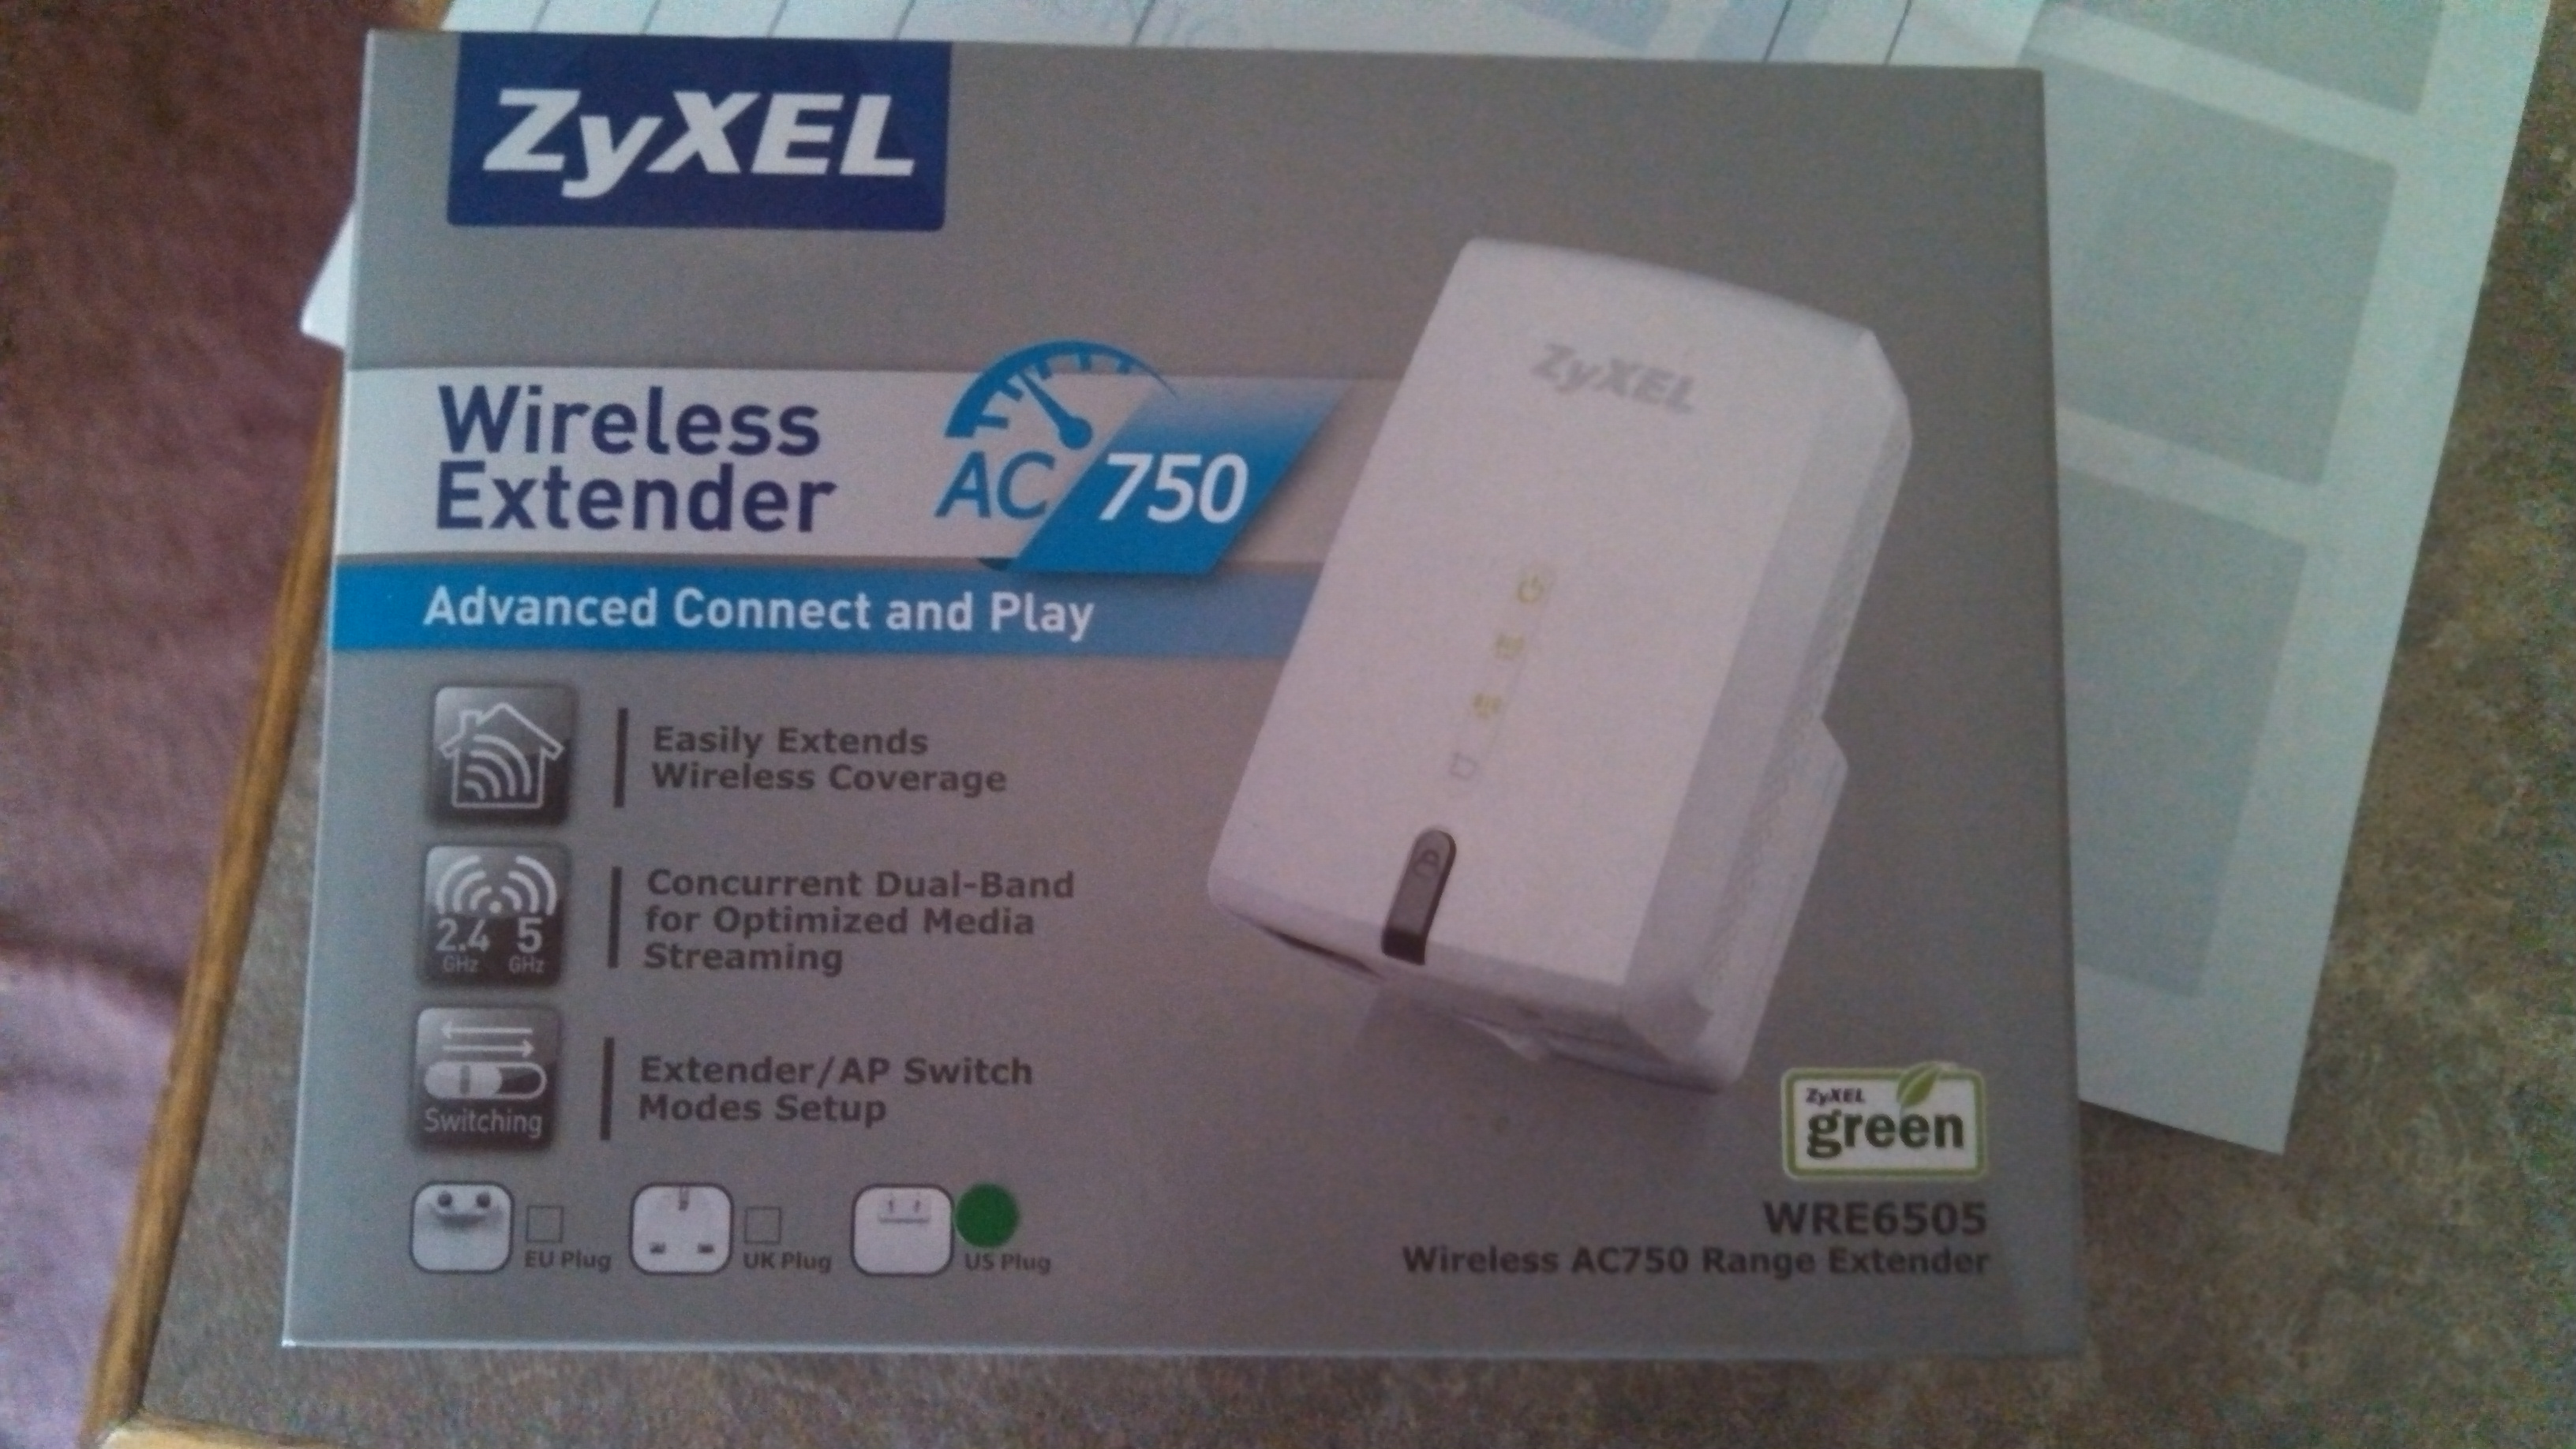 Zyxel Wireless AC750 Range Extender Review - BB Product Reviews